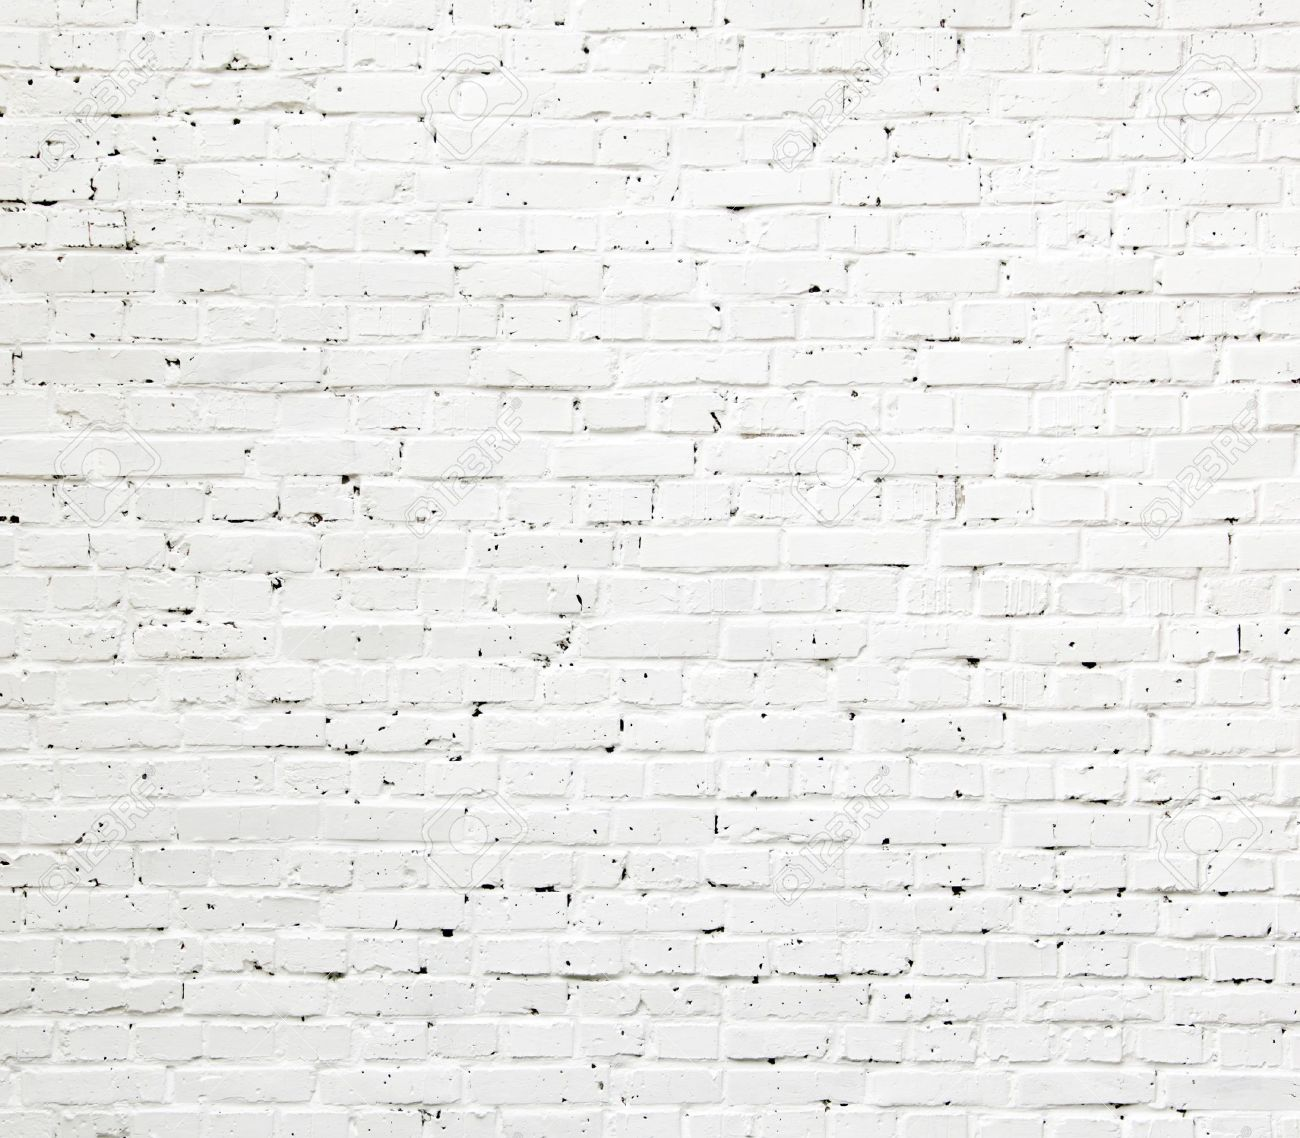 A White Roughly Textured Brick Wall Painted With White Paint Stock